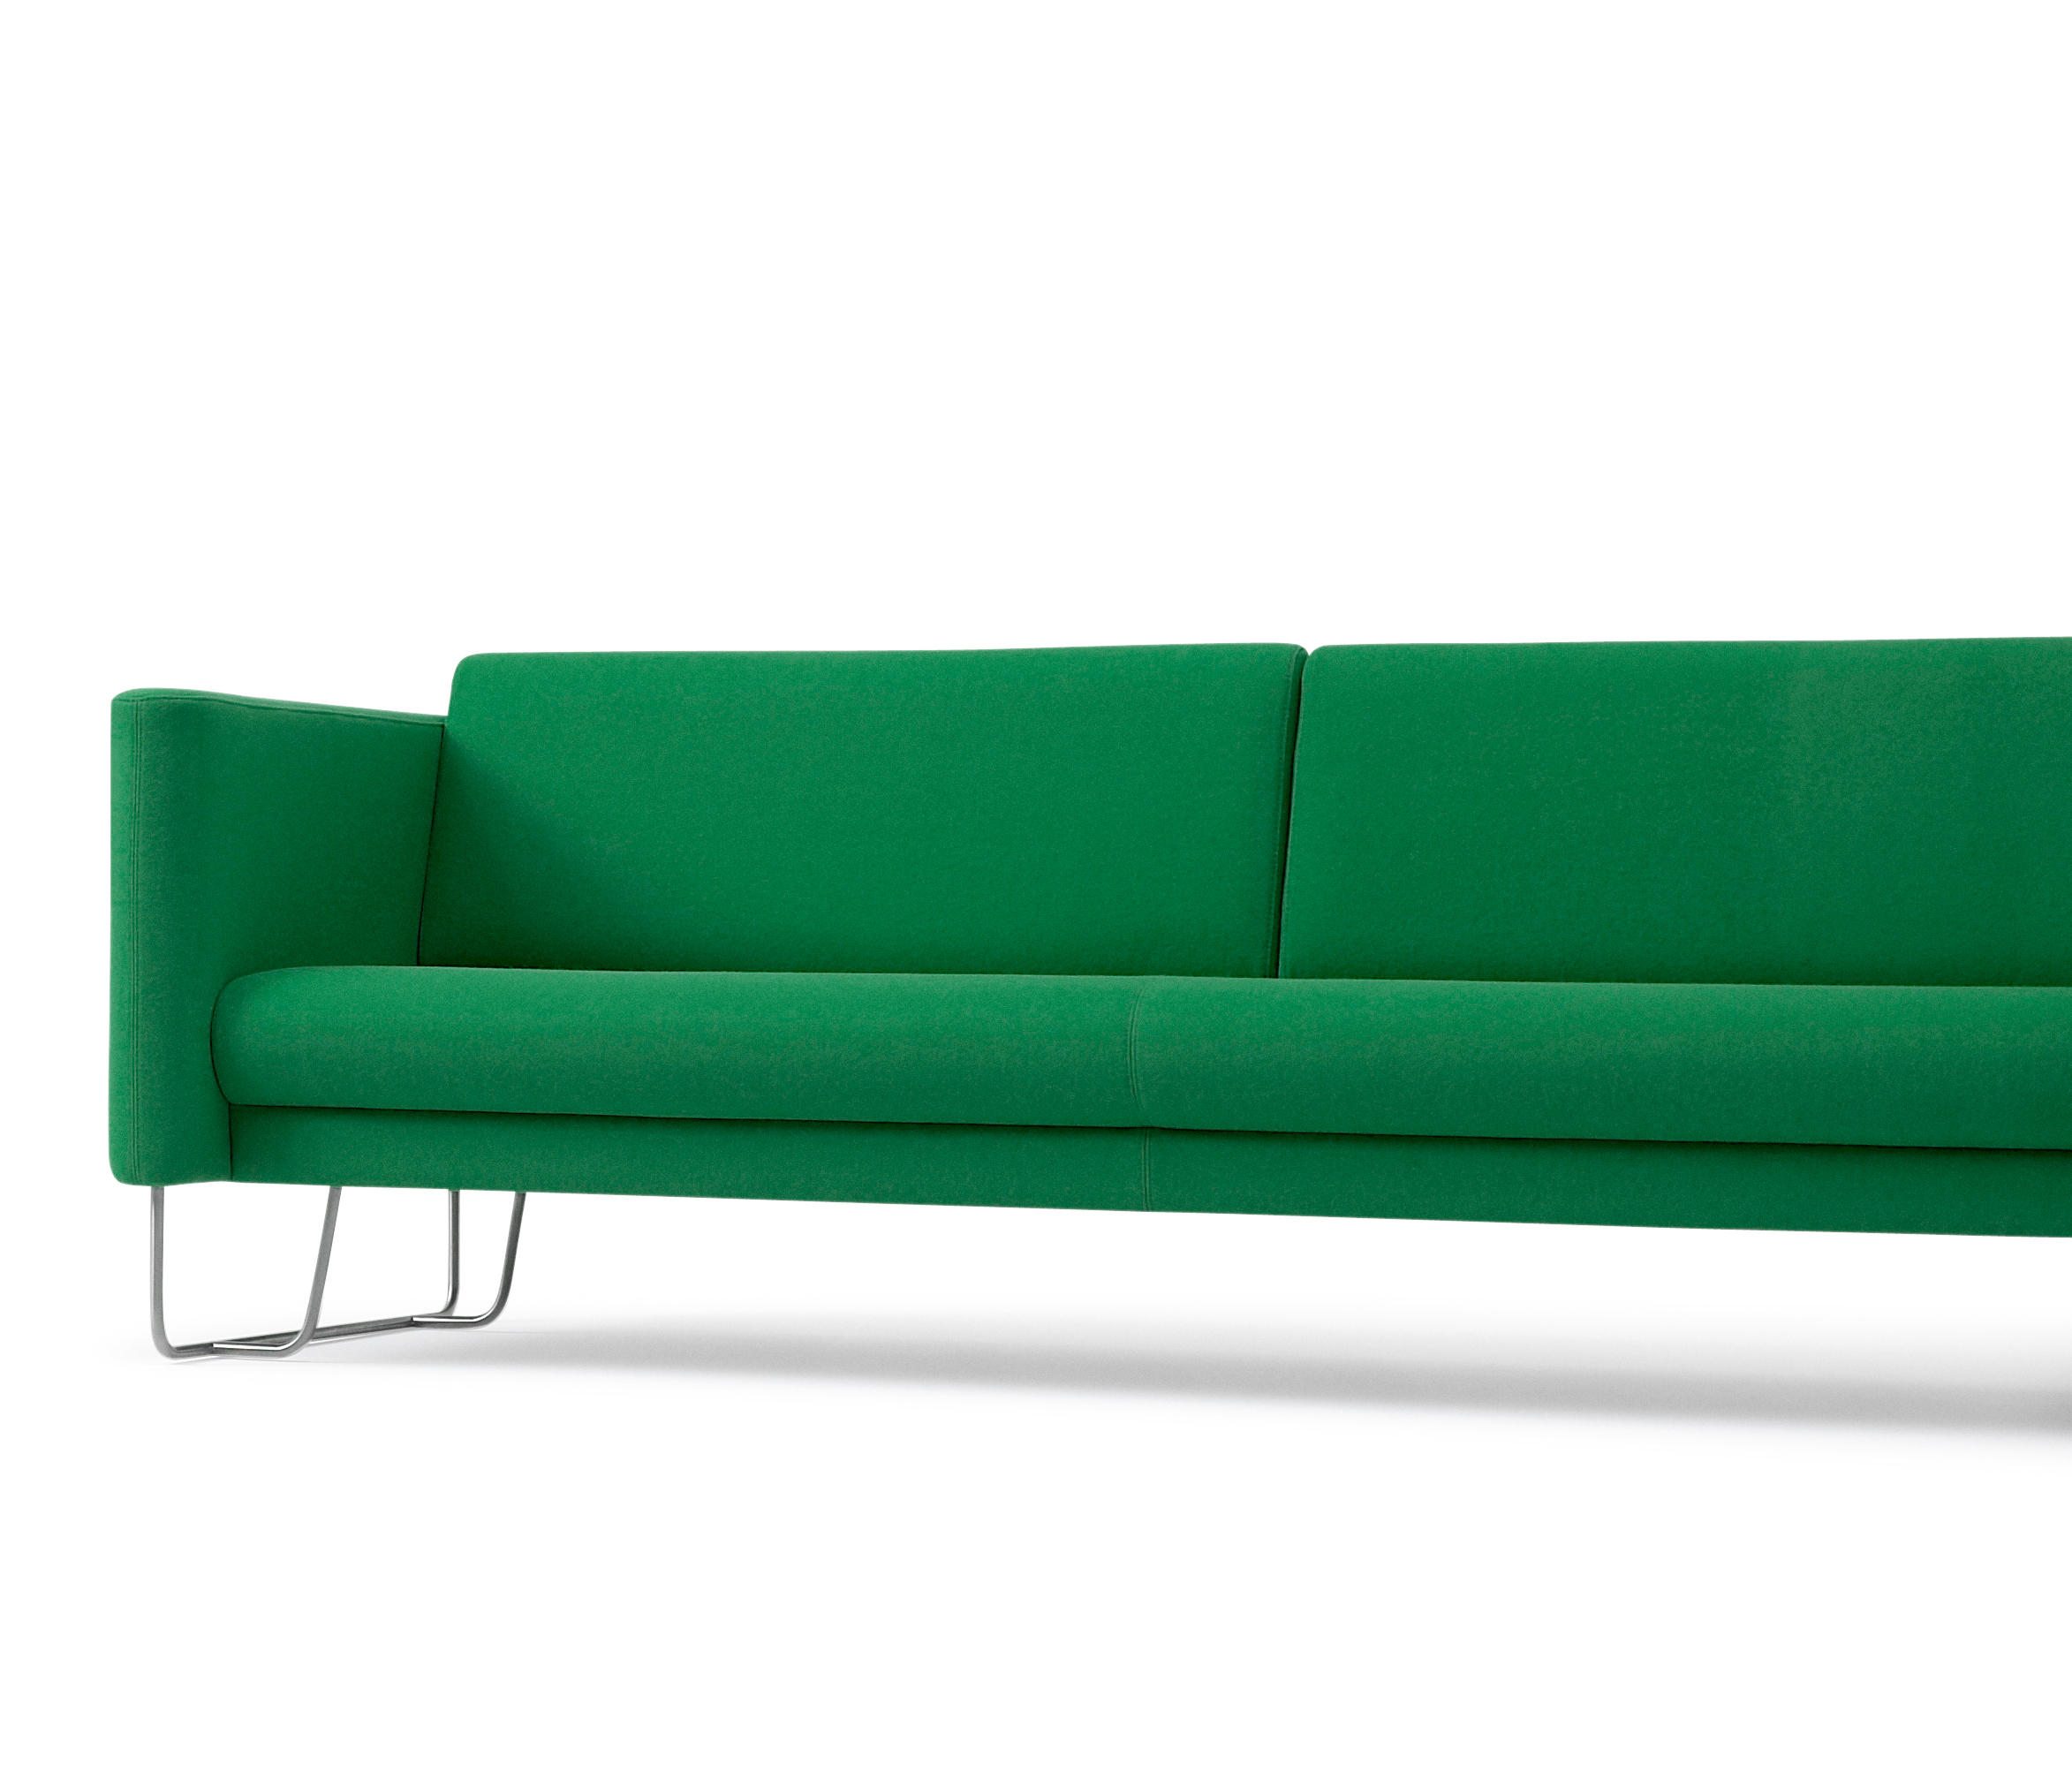 PACIFIC SOFA Lounge sofas from Halle